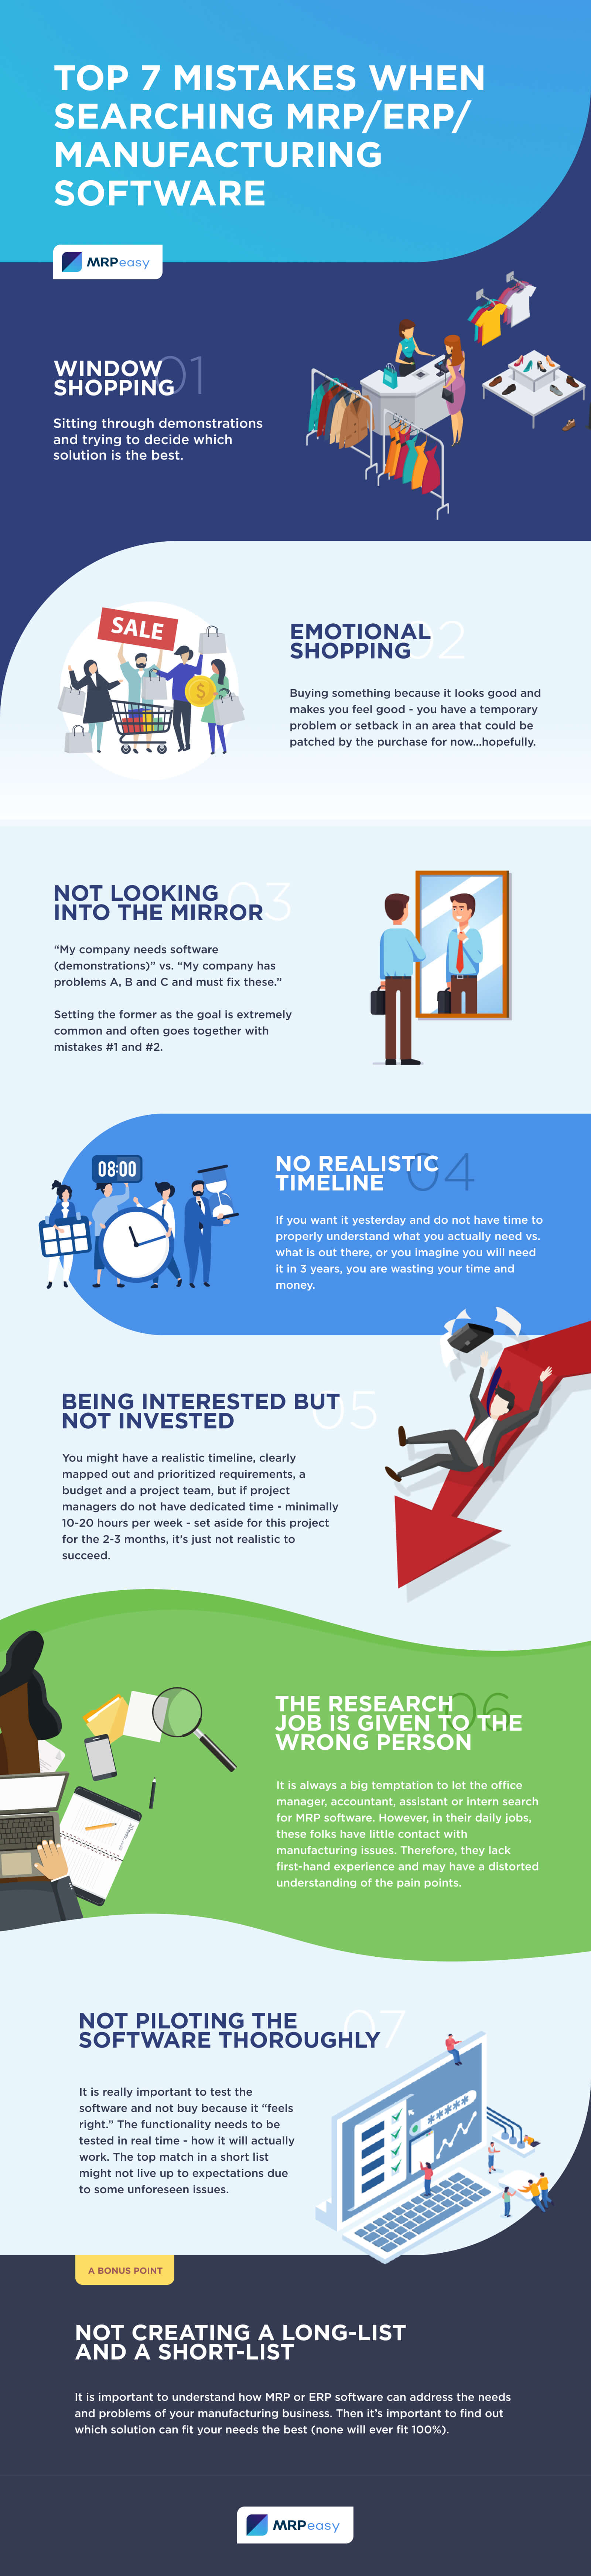 INFOGRAPHIC: Top 7 Mistakes When Searching MRP/ERP Software